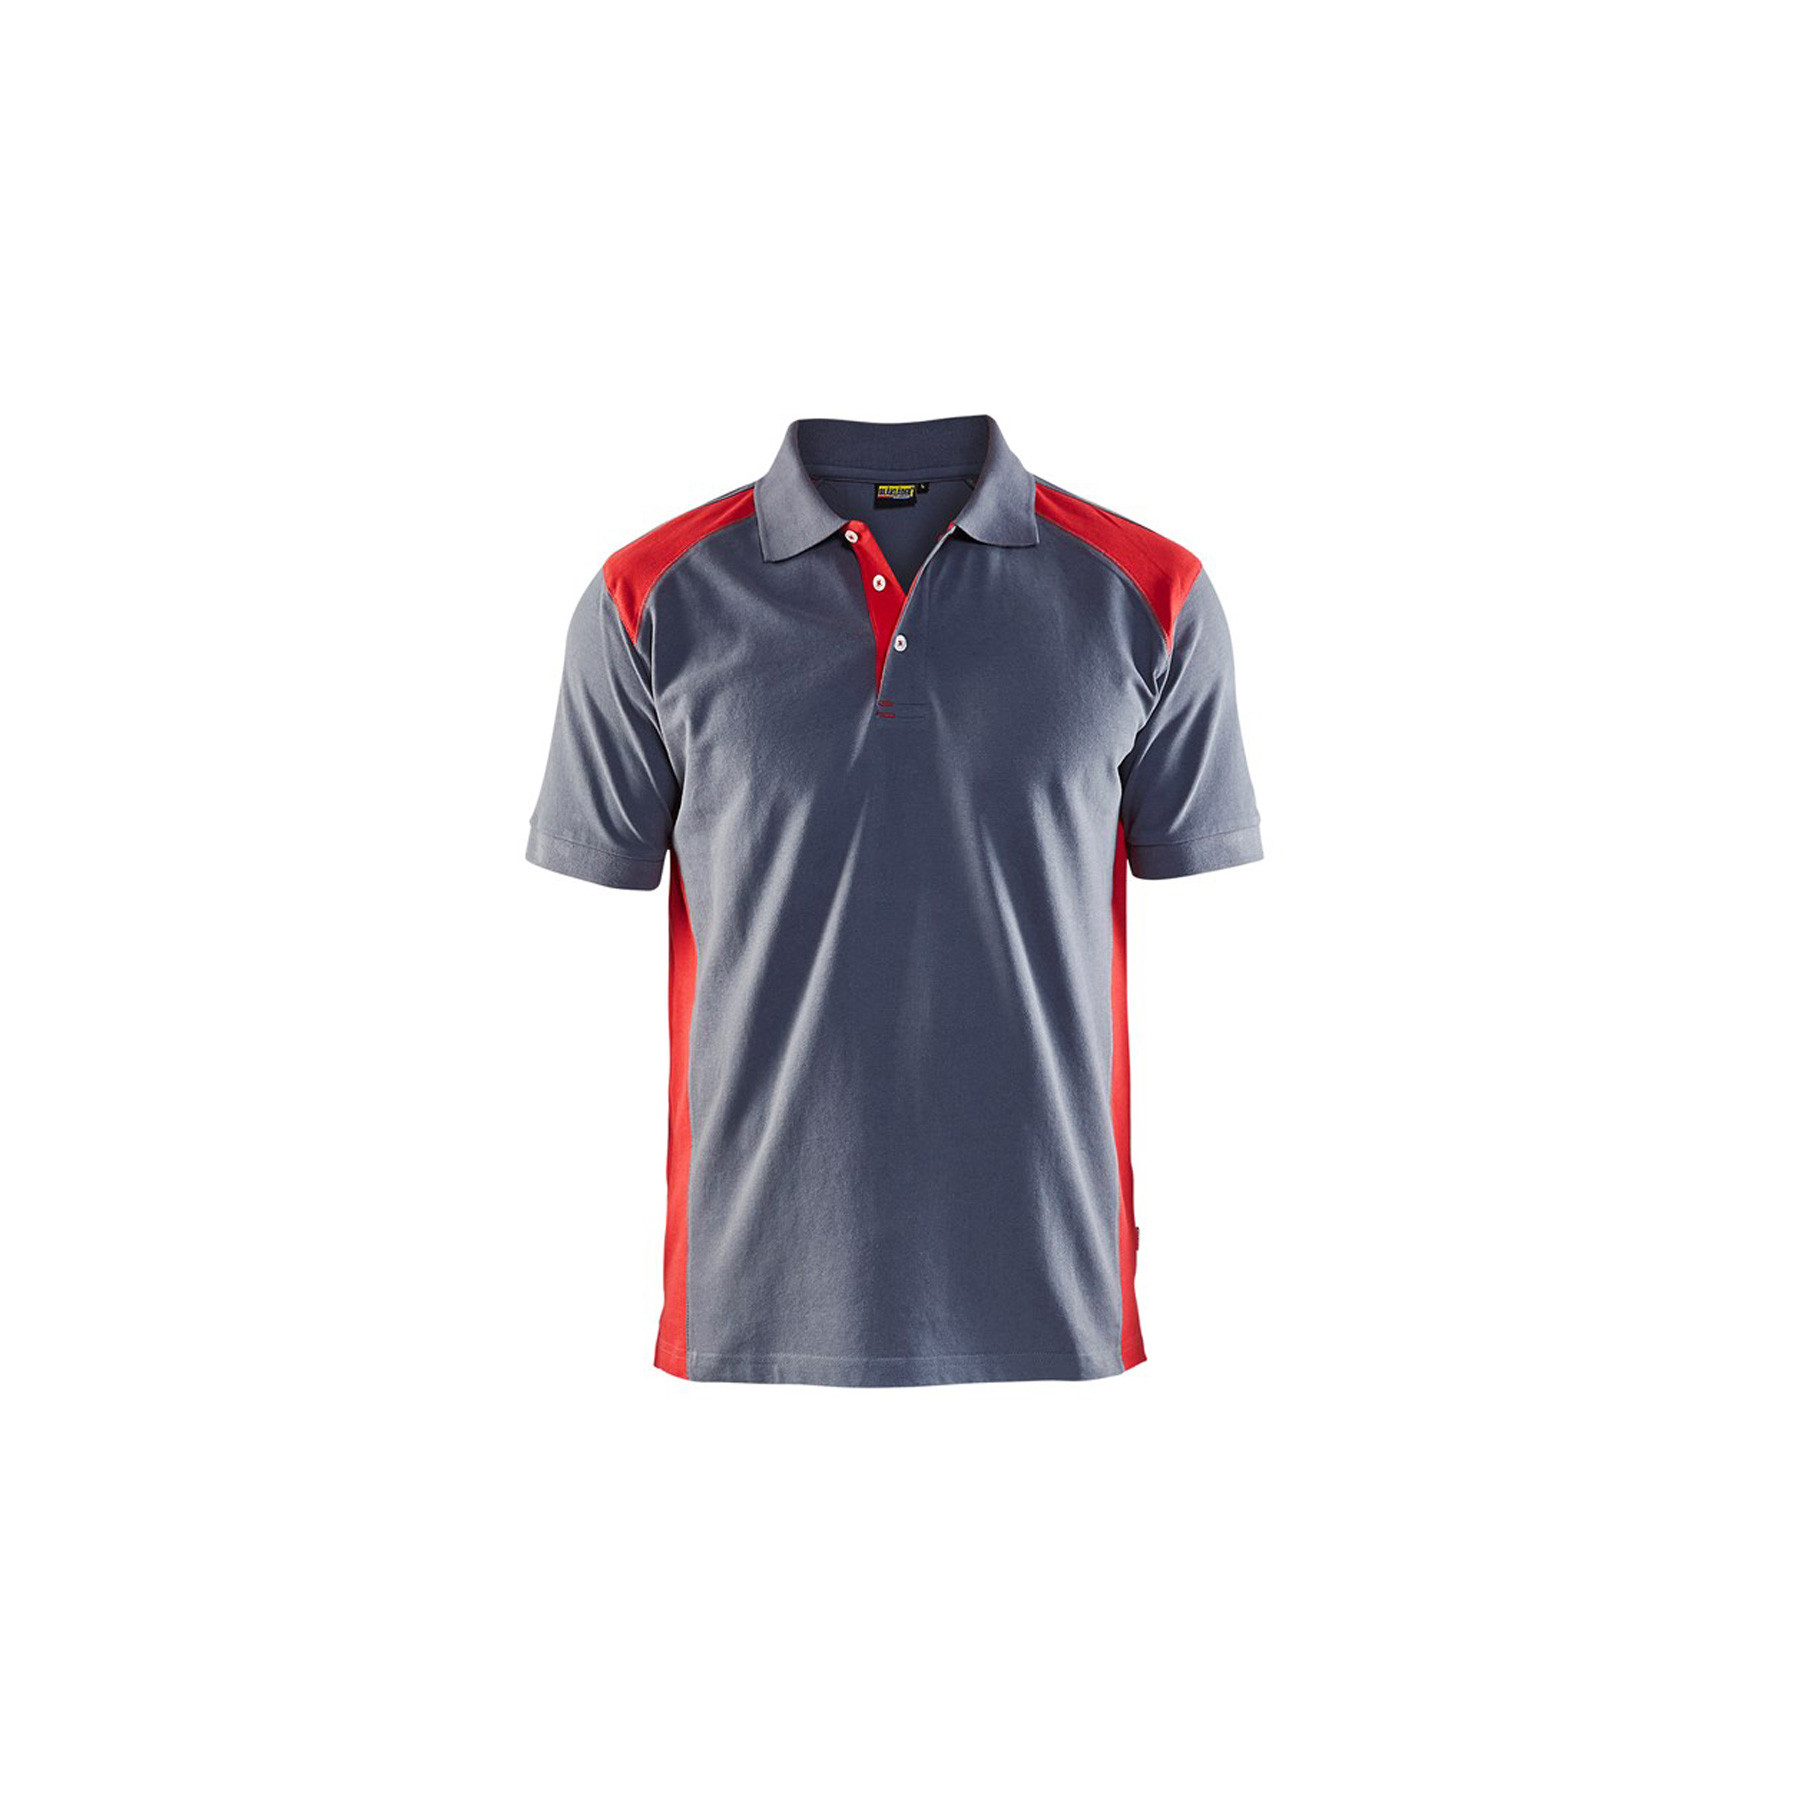 Polo Blaklader maille piqué Homme - Gris Epaule Rouge